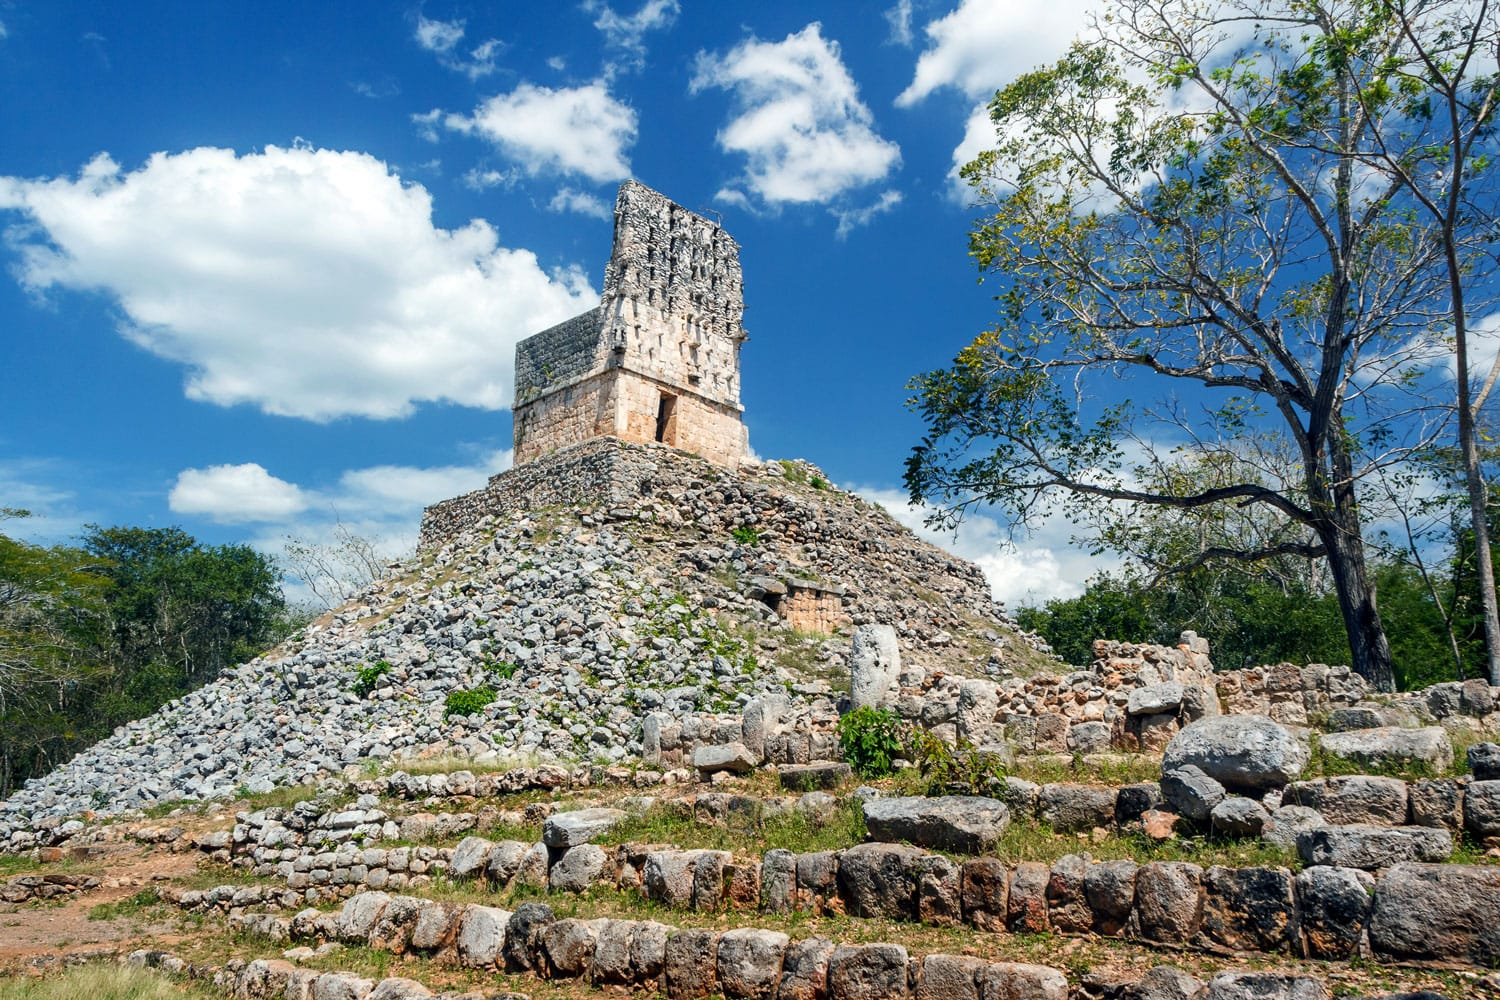 Ruins of the ancient Mayan city of Labna, Mexico